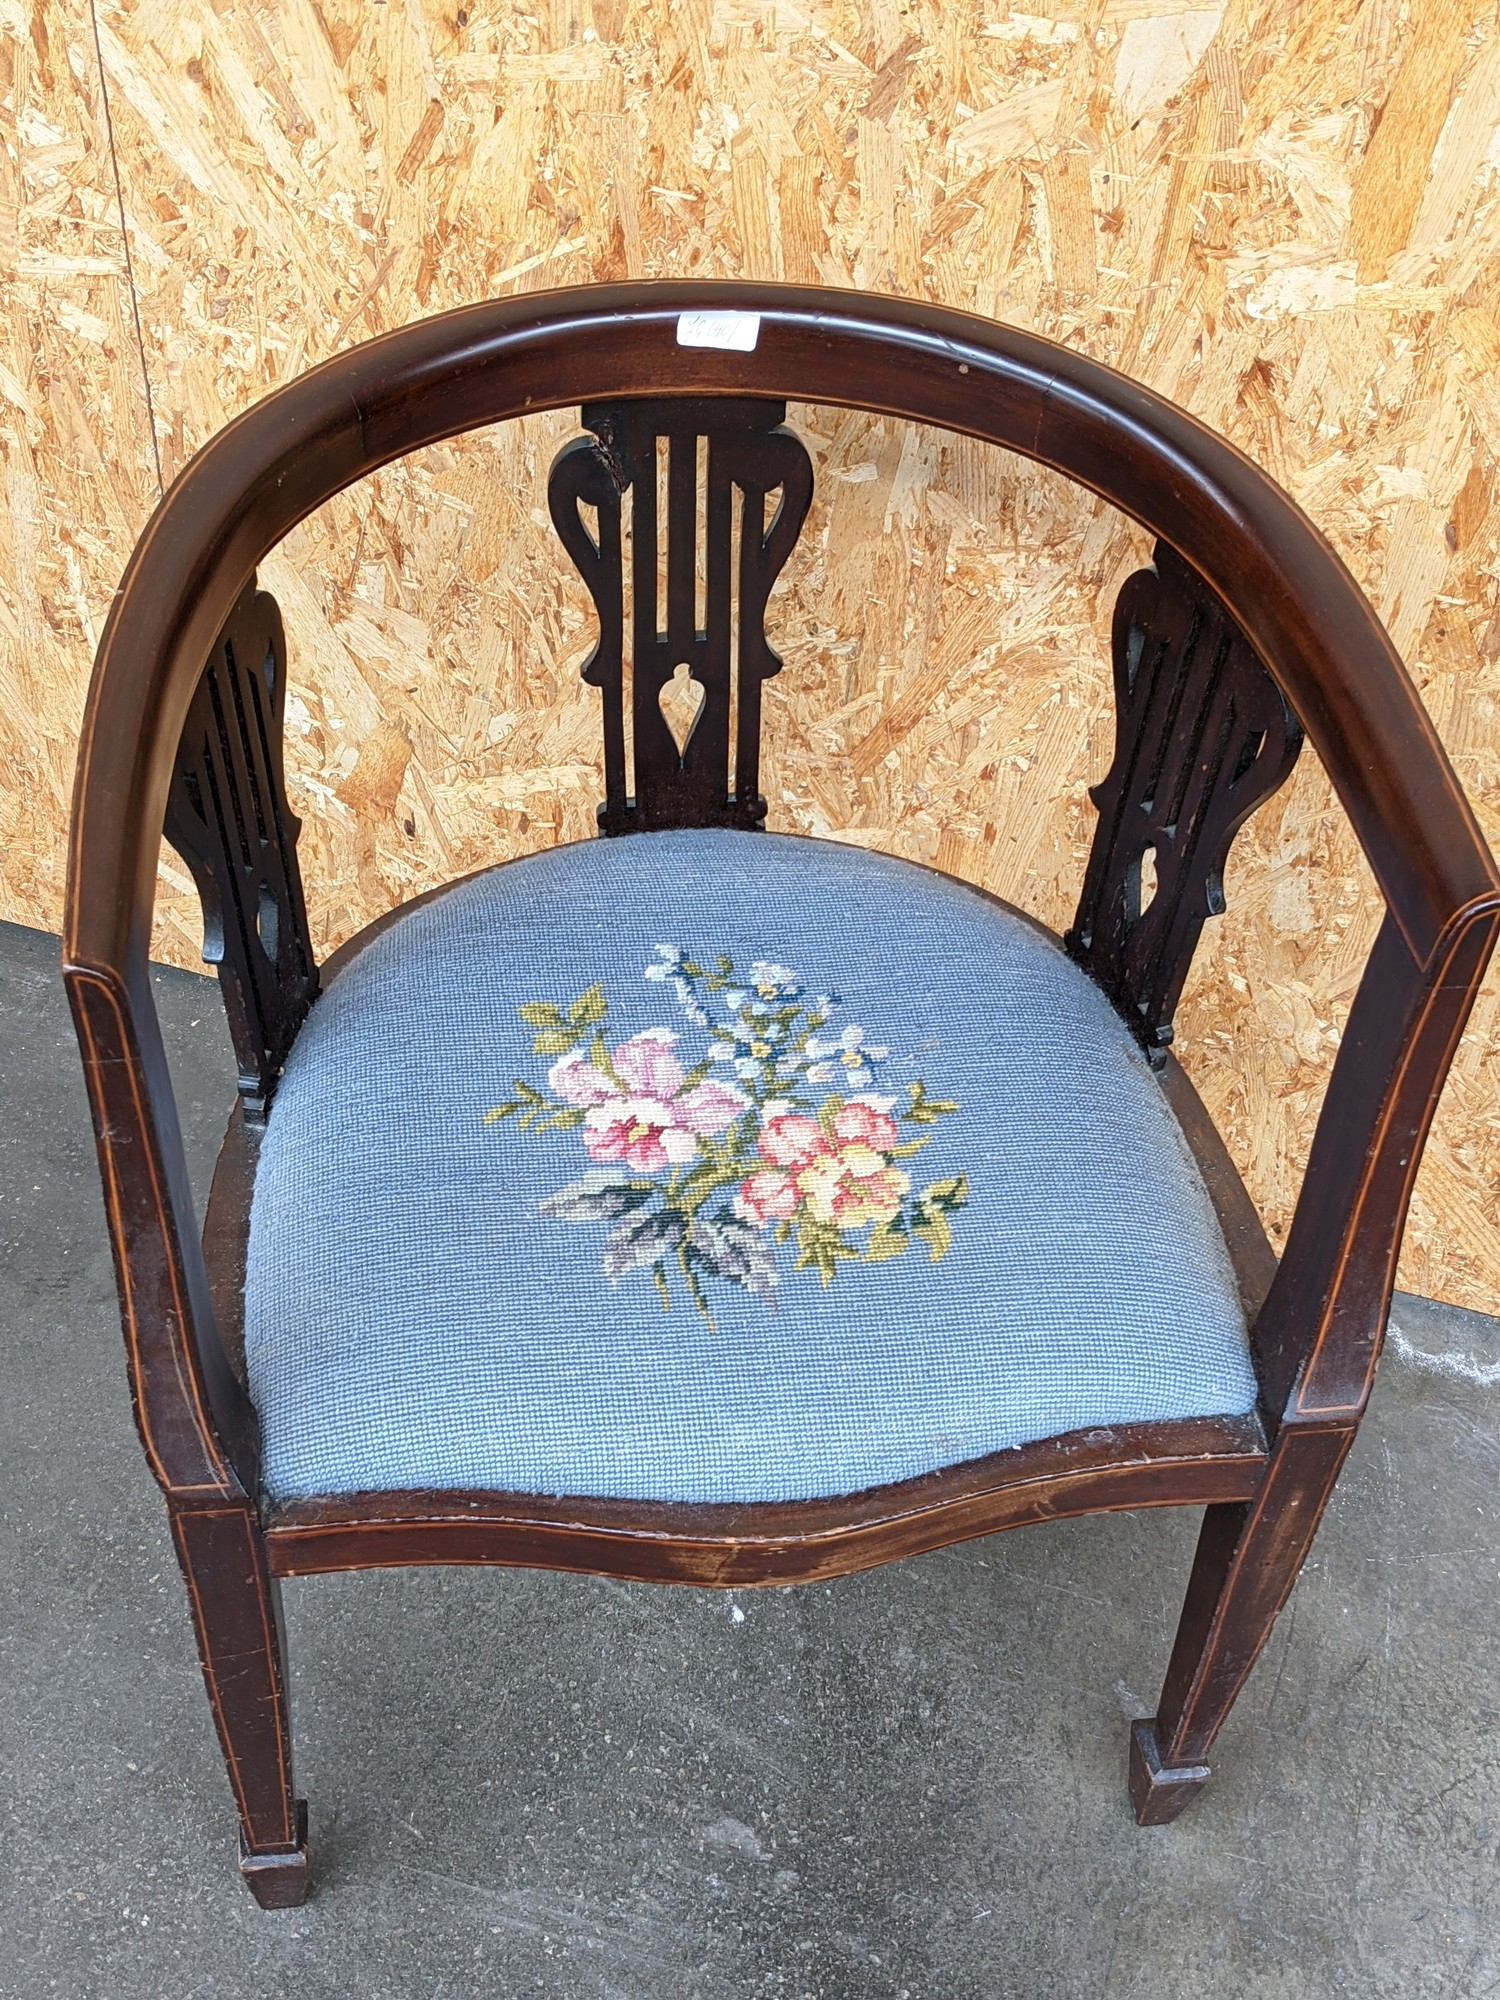 An Edwardian inlaid curved back arm chair, with three splat supports, upon pedestal legs, - Image 2 of 3